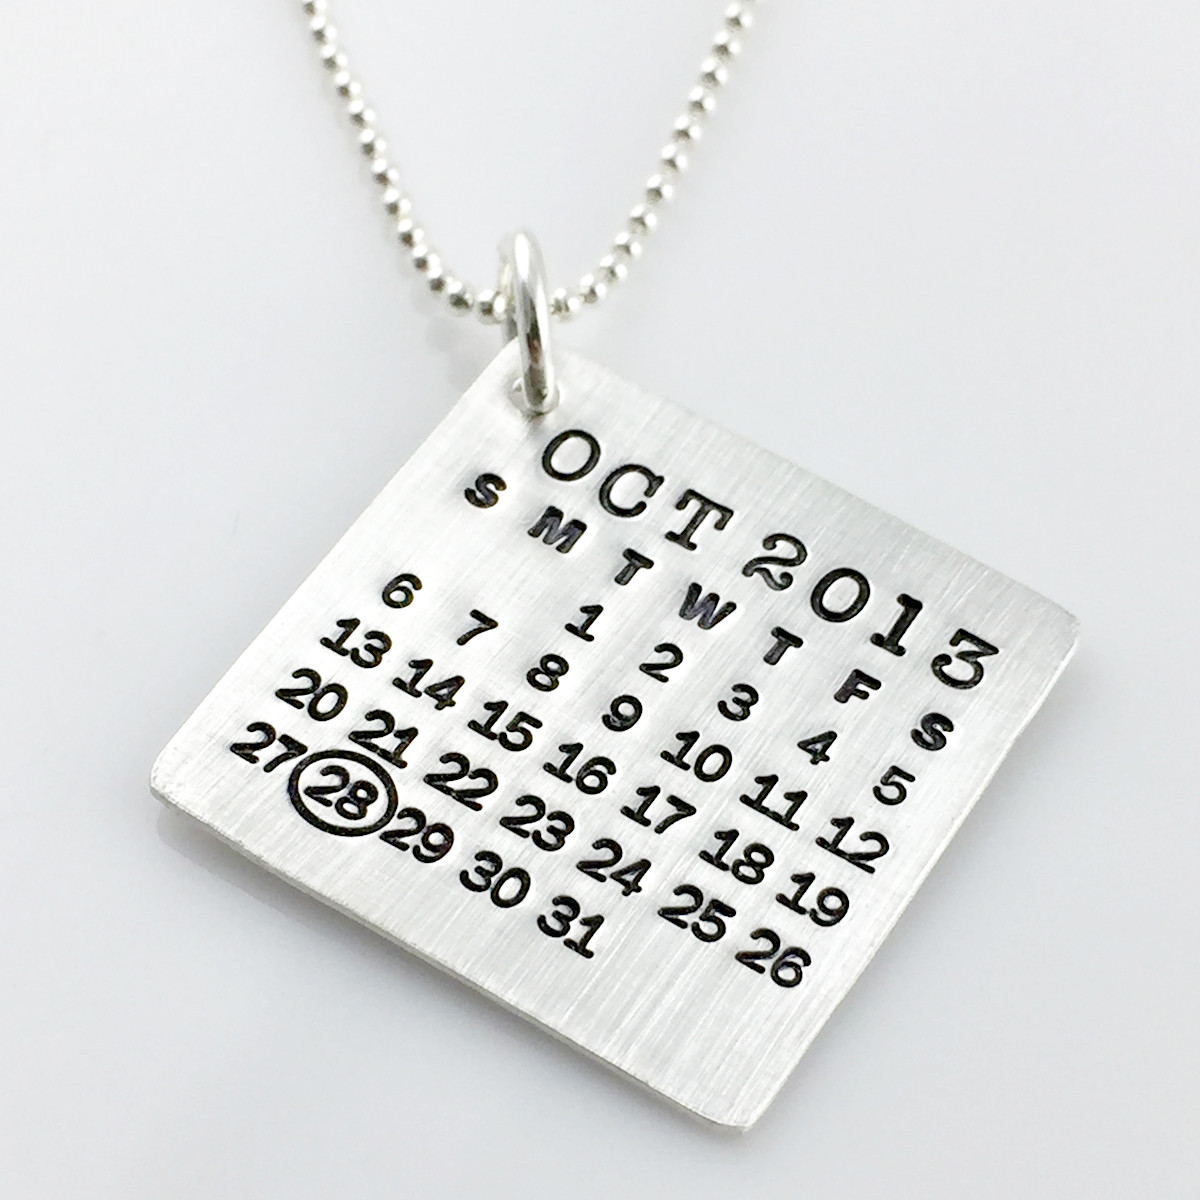 Mark Your Calendar Necklace with oval highlight